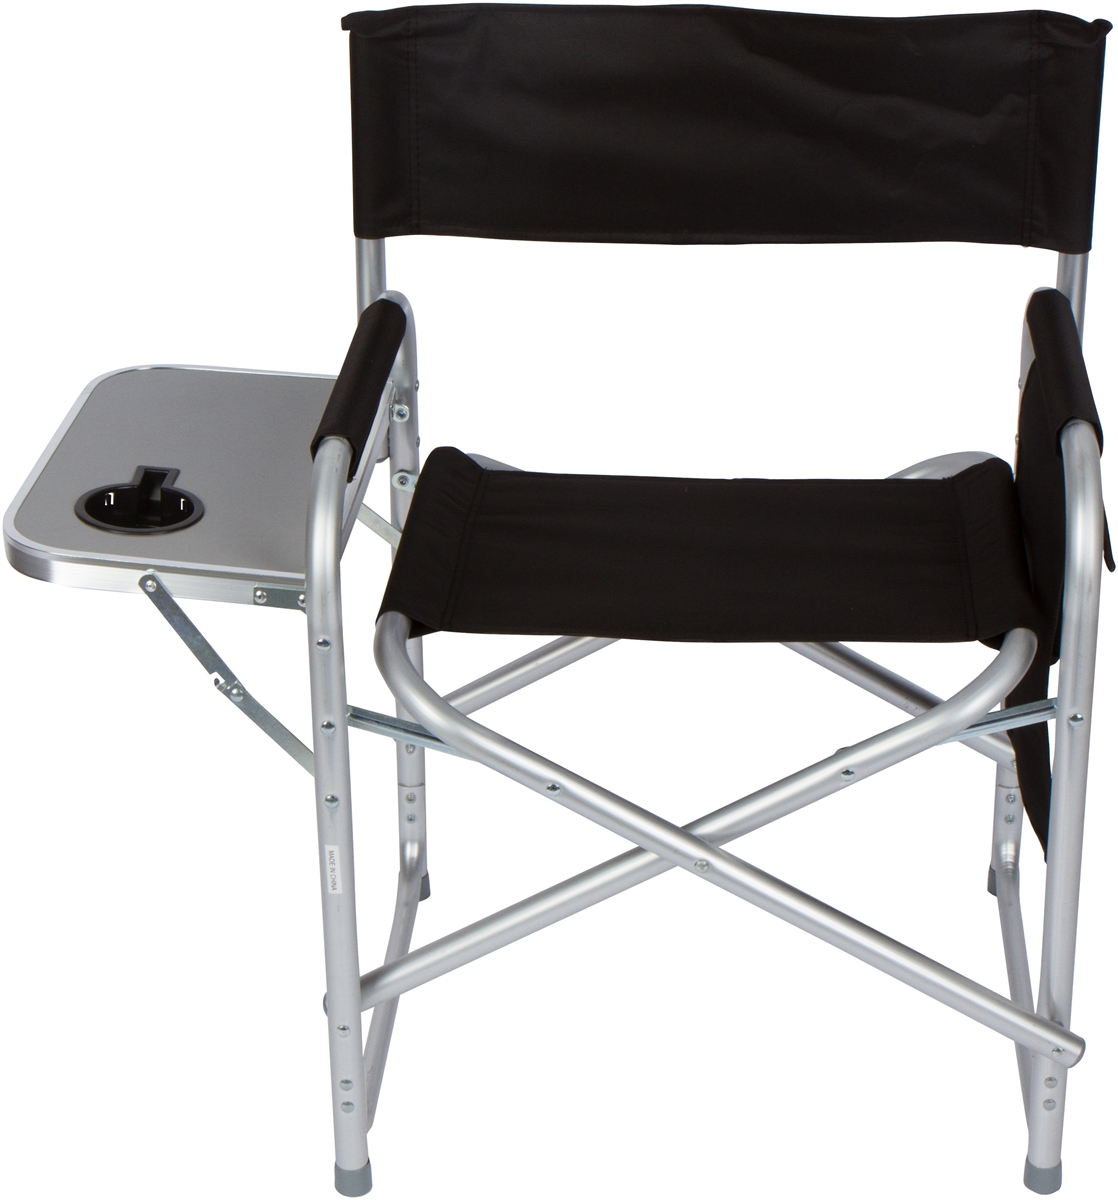 Swell Folding Directors Chair With Aluminum Side Table Storage Bag And Steel Tubing By Trademark Innovations Uwap Interior Chair Design Uwaporg